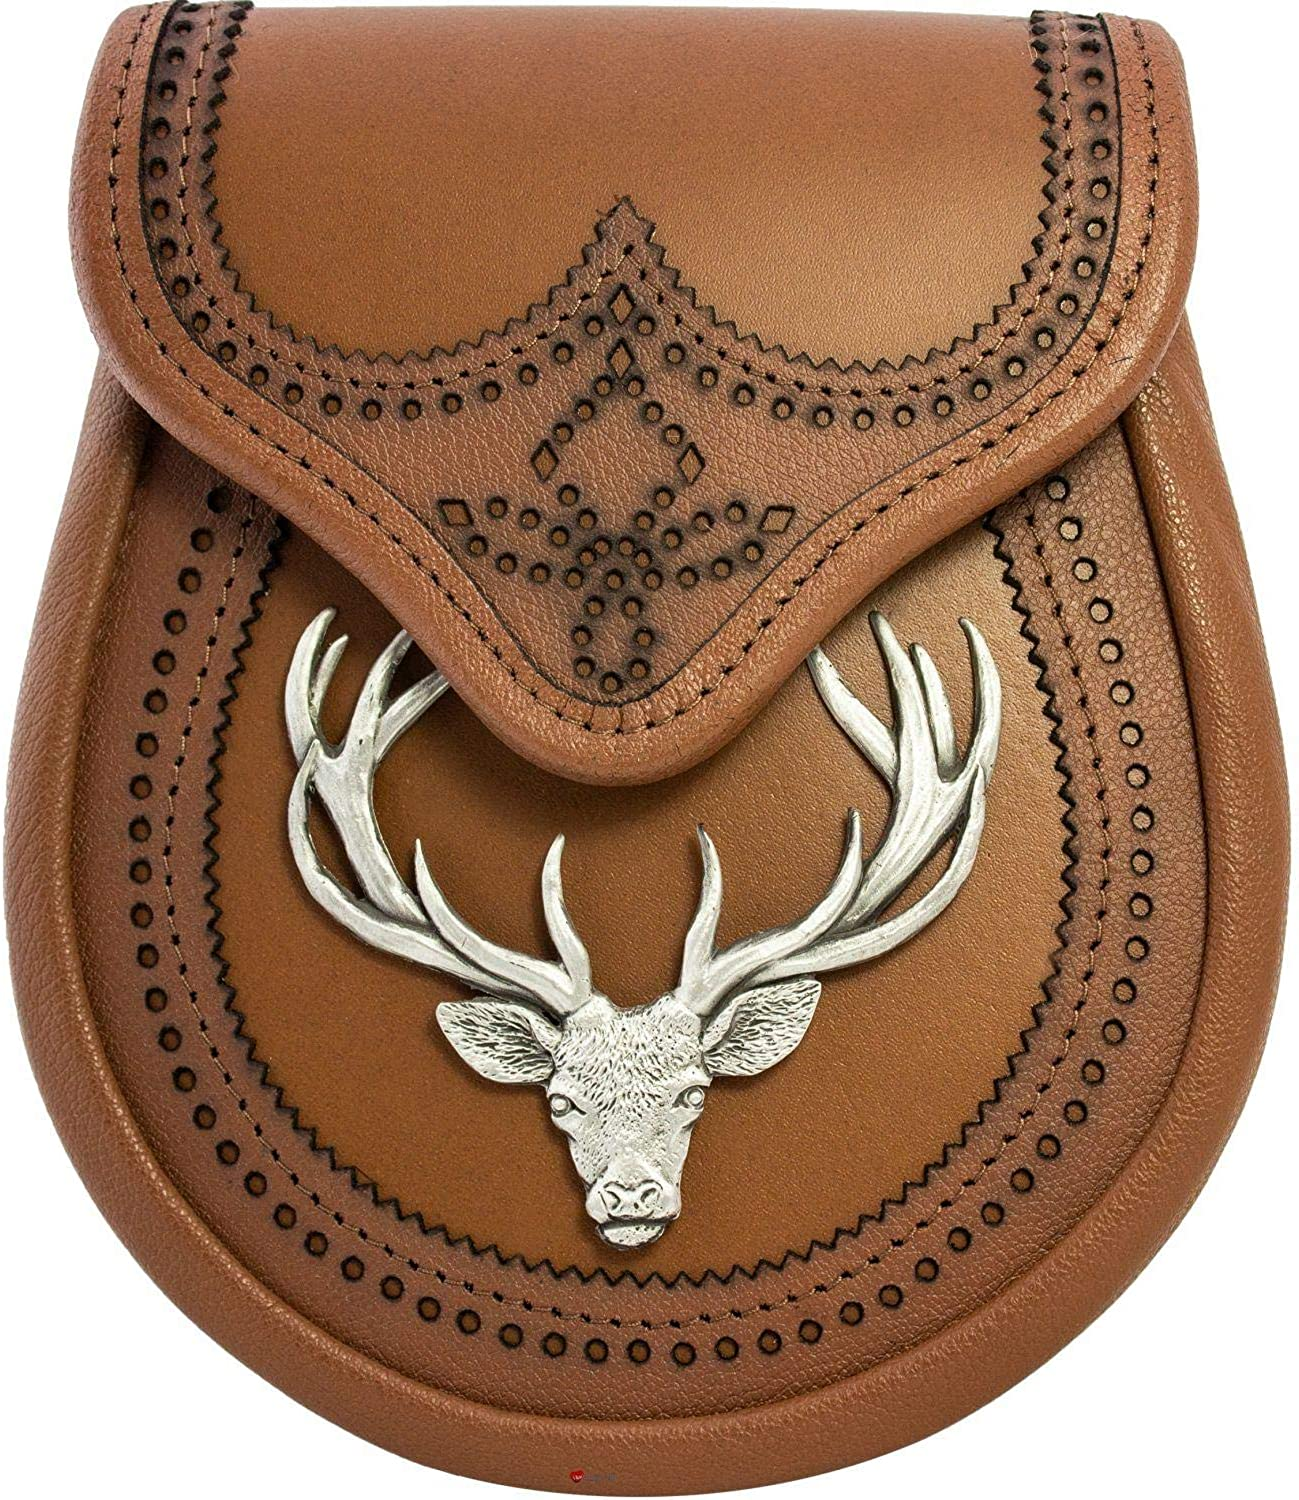 Day Sporran For Kilts, Tan Leather, Stag Head Metal Badge Antique Finish Scottish Made Comes with Sporran Waist Chain